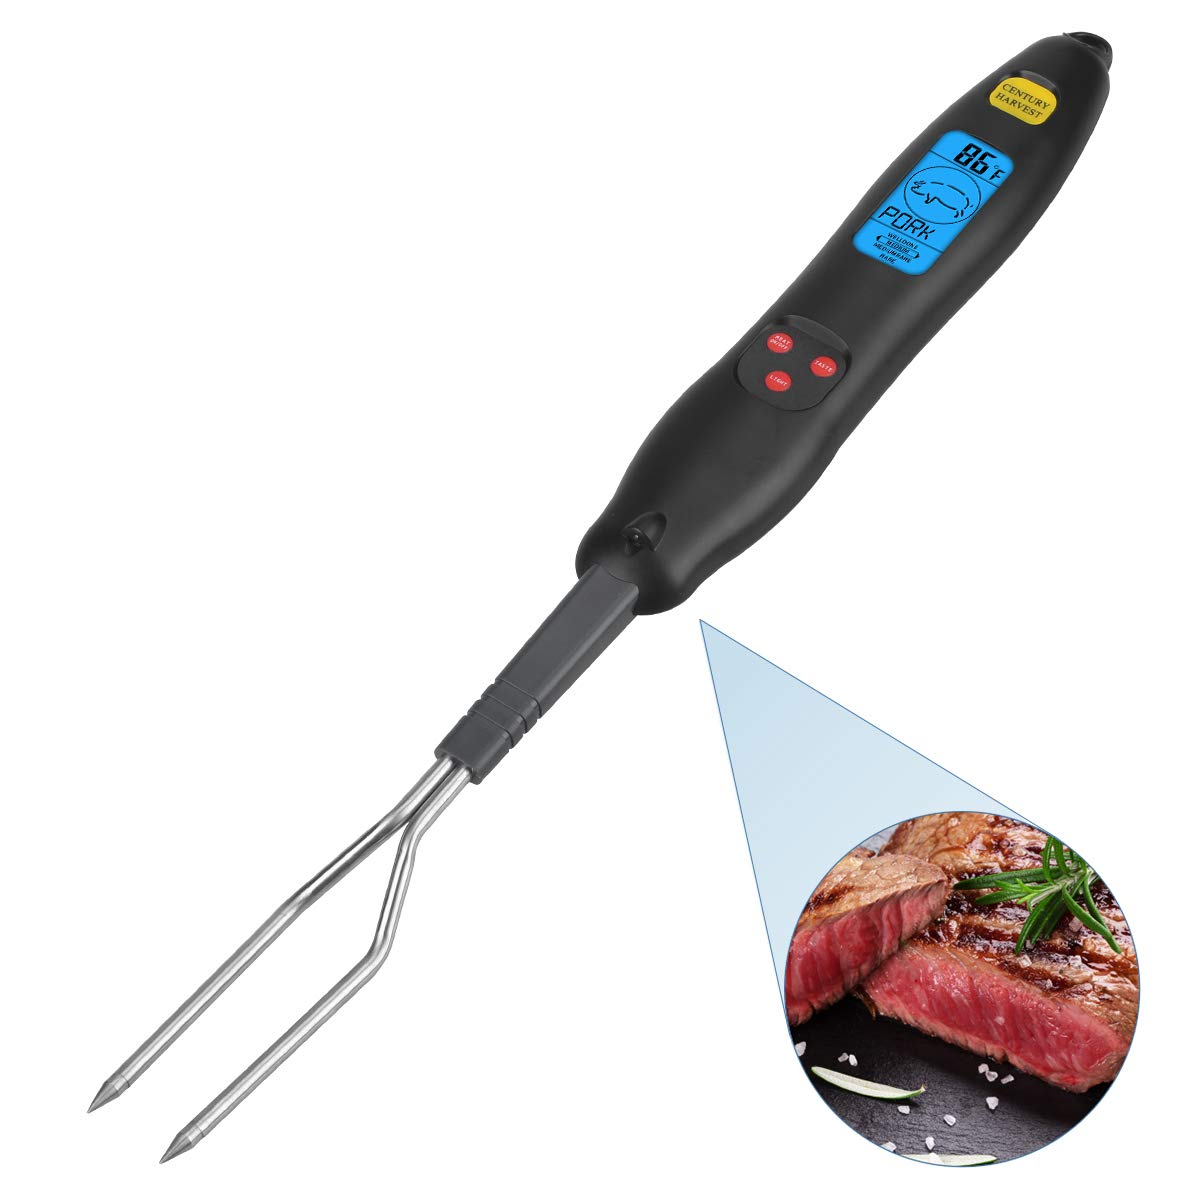 MIBLUE Meat Thermometer, Fork Meat Thermometer Instant Read Food Thermometer with Backlit, LED Light for BBQ, Large Thermometer for Grilling Steak Beef Turkey Chicken Fish Outdoor